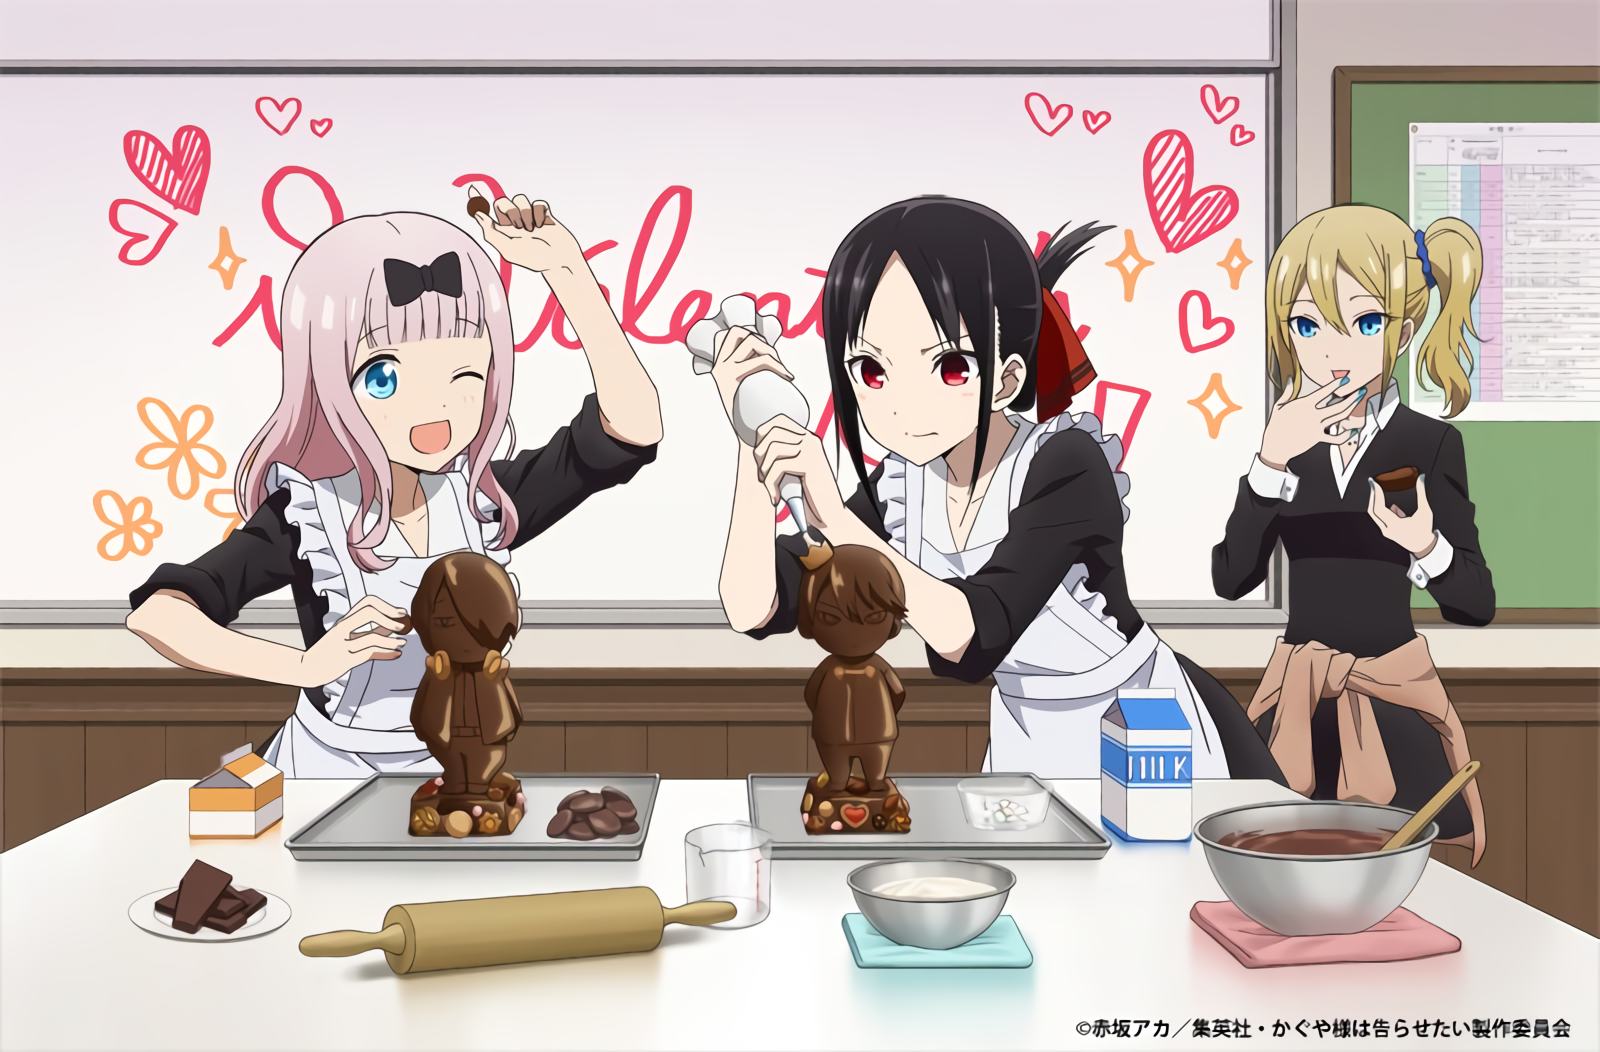 Making Chocolate For Valentine S Day Kaguya Sama Love Is War Chica Anime Kawaii Dibujos De Anime Anime